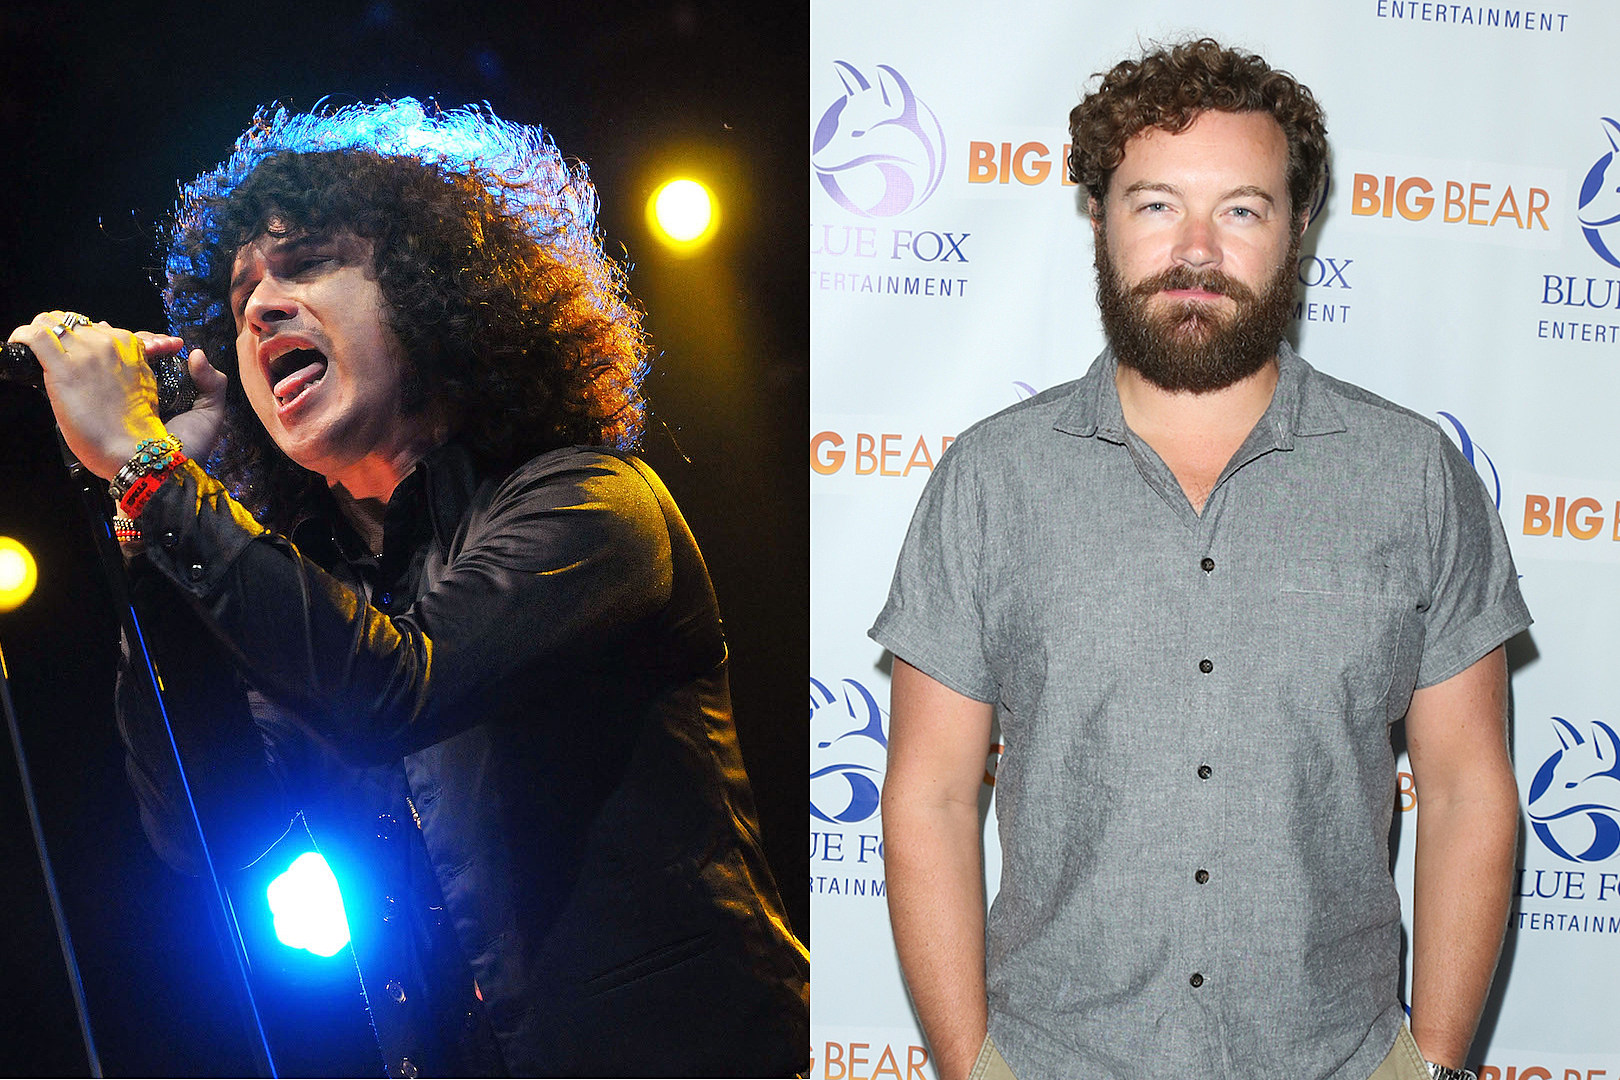 The Mars Volta Singer's Dog Poisoned, Blames Actor + Scientology